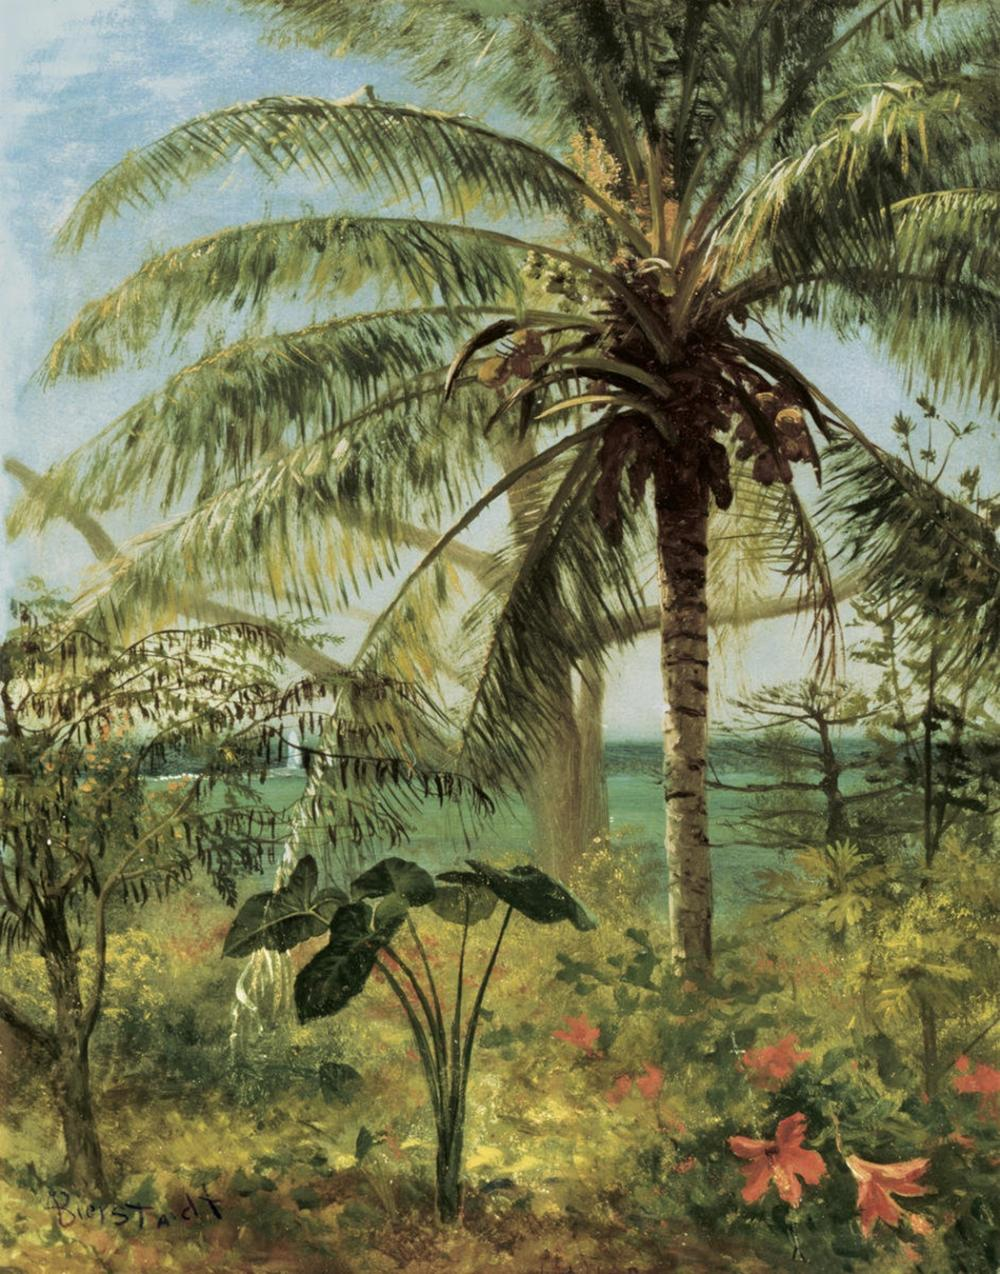 ALBERT BIERSTADT PALM TREE, NASSAU 1892